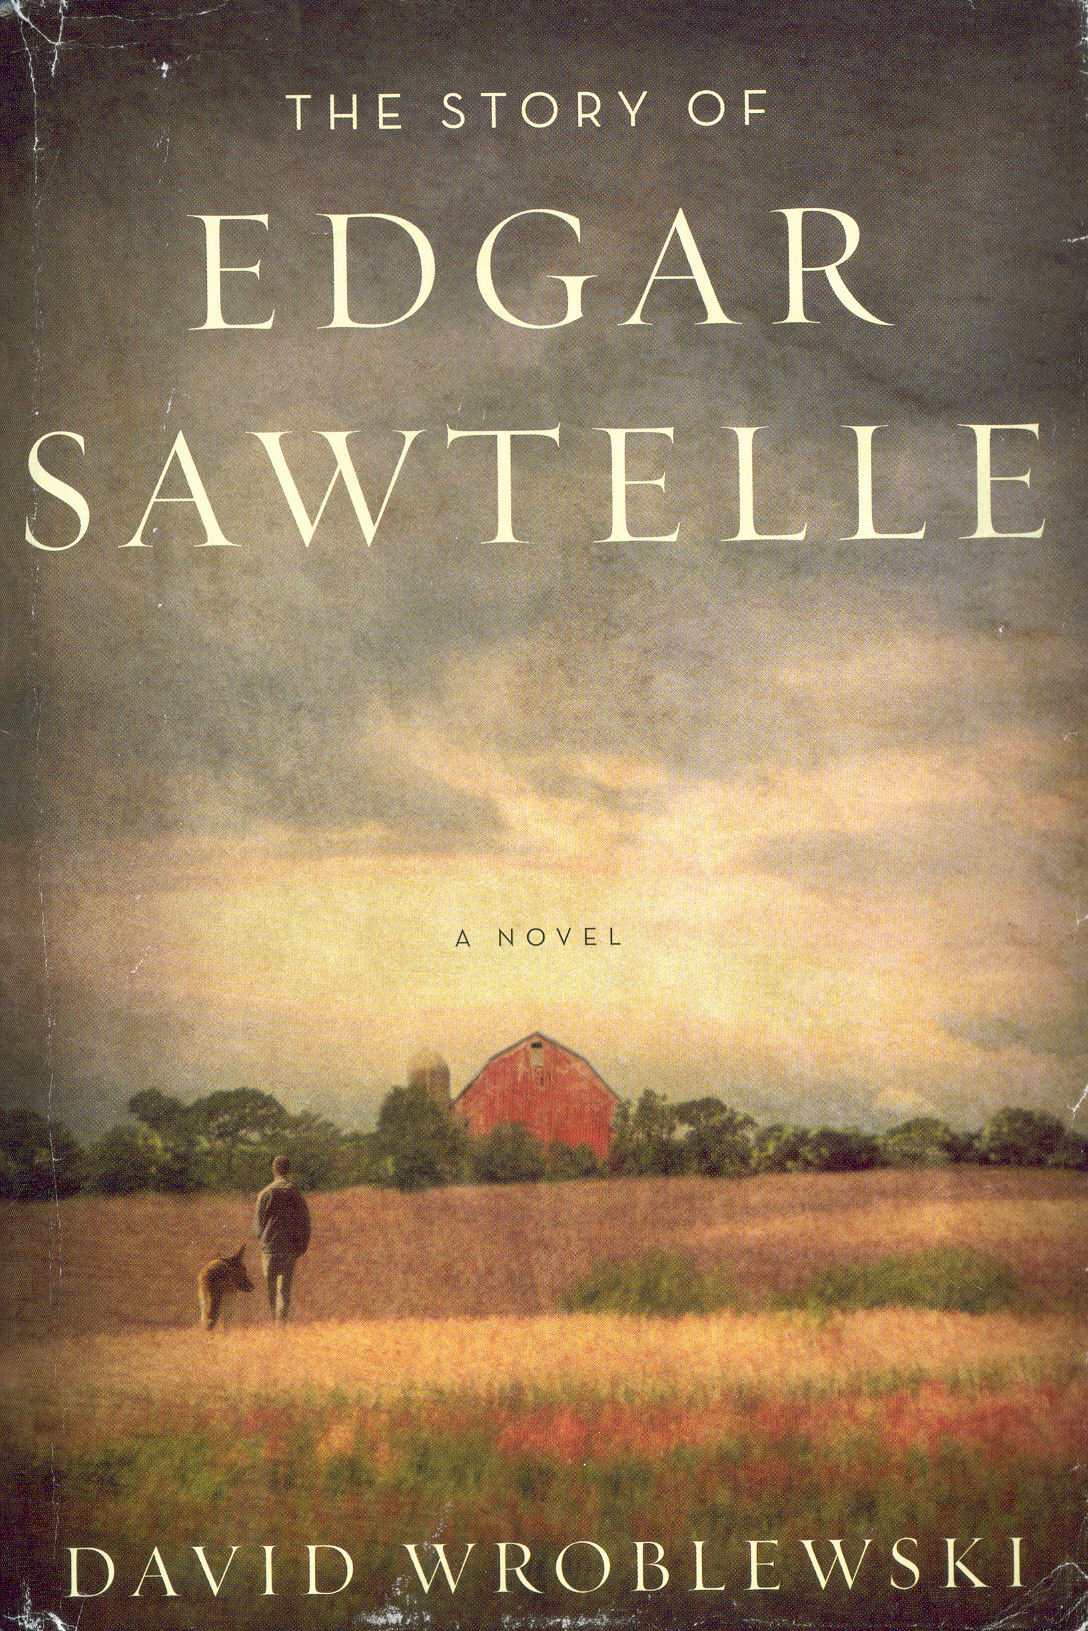 edgar sawtelle essay A happy farm life, tragic heart break, traitorous family, and of course dogs: the marvelous components that make the story of edgar sawtelle by david wroblewski a true classic.